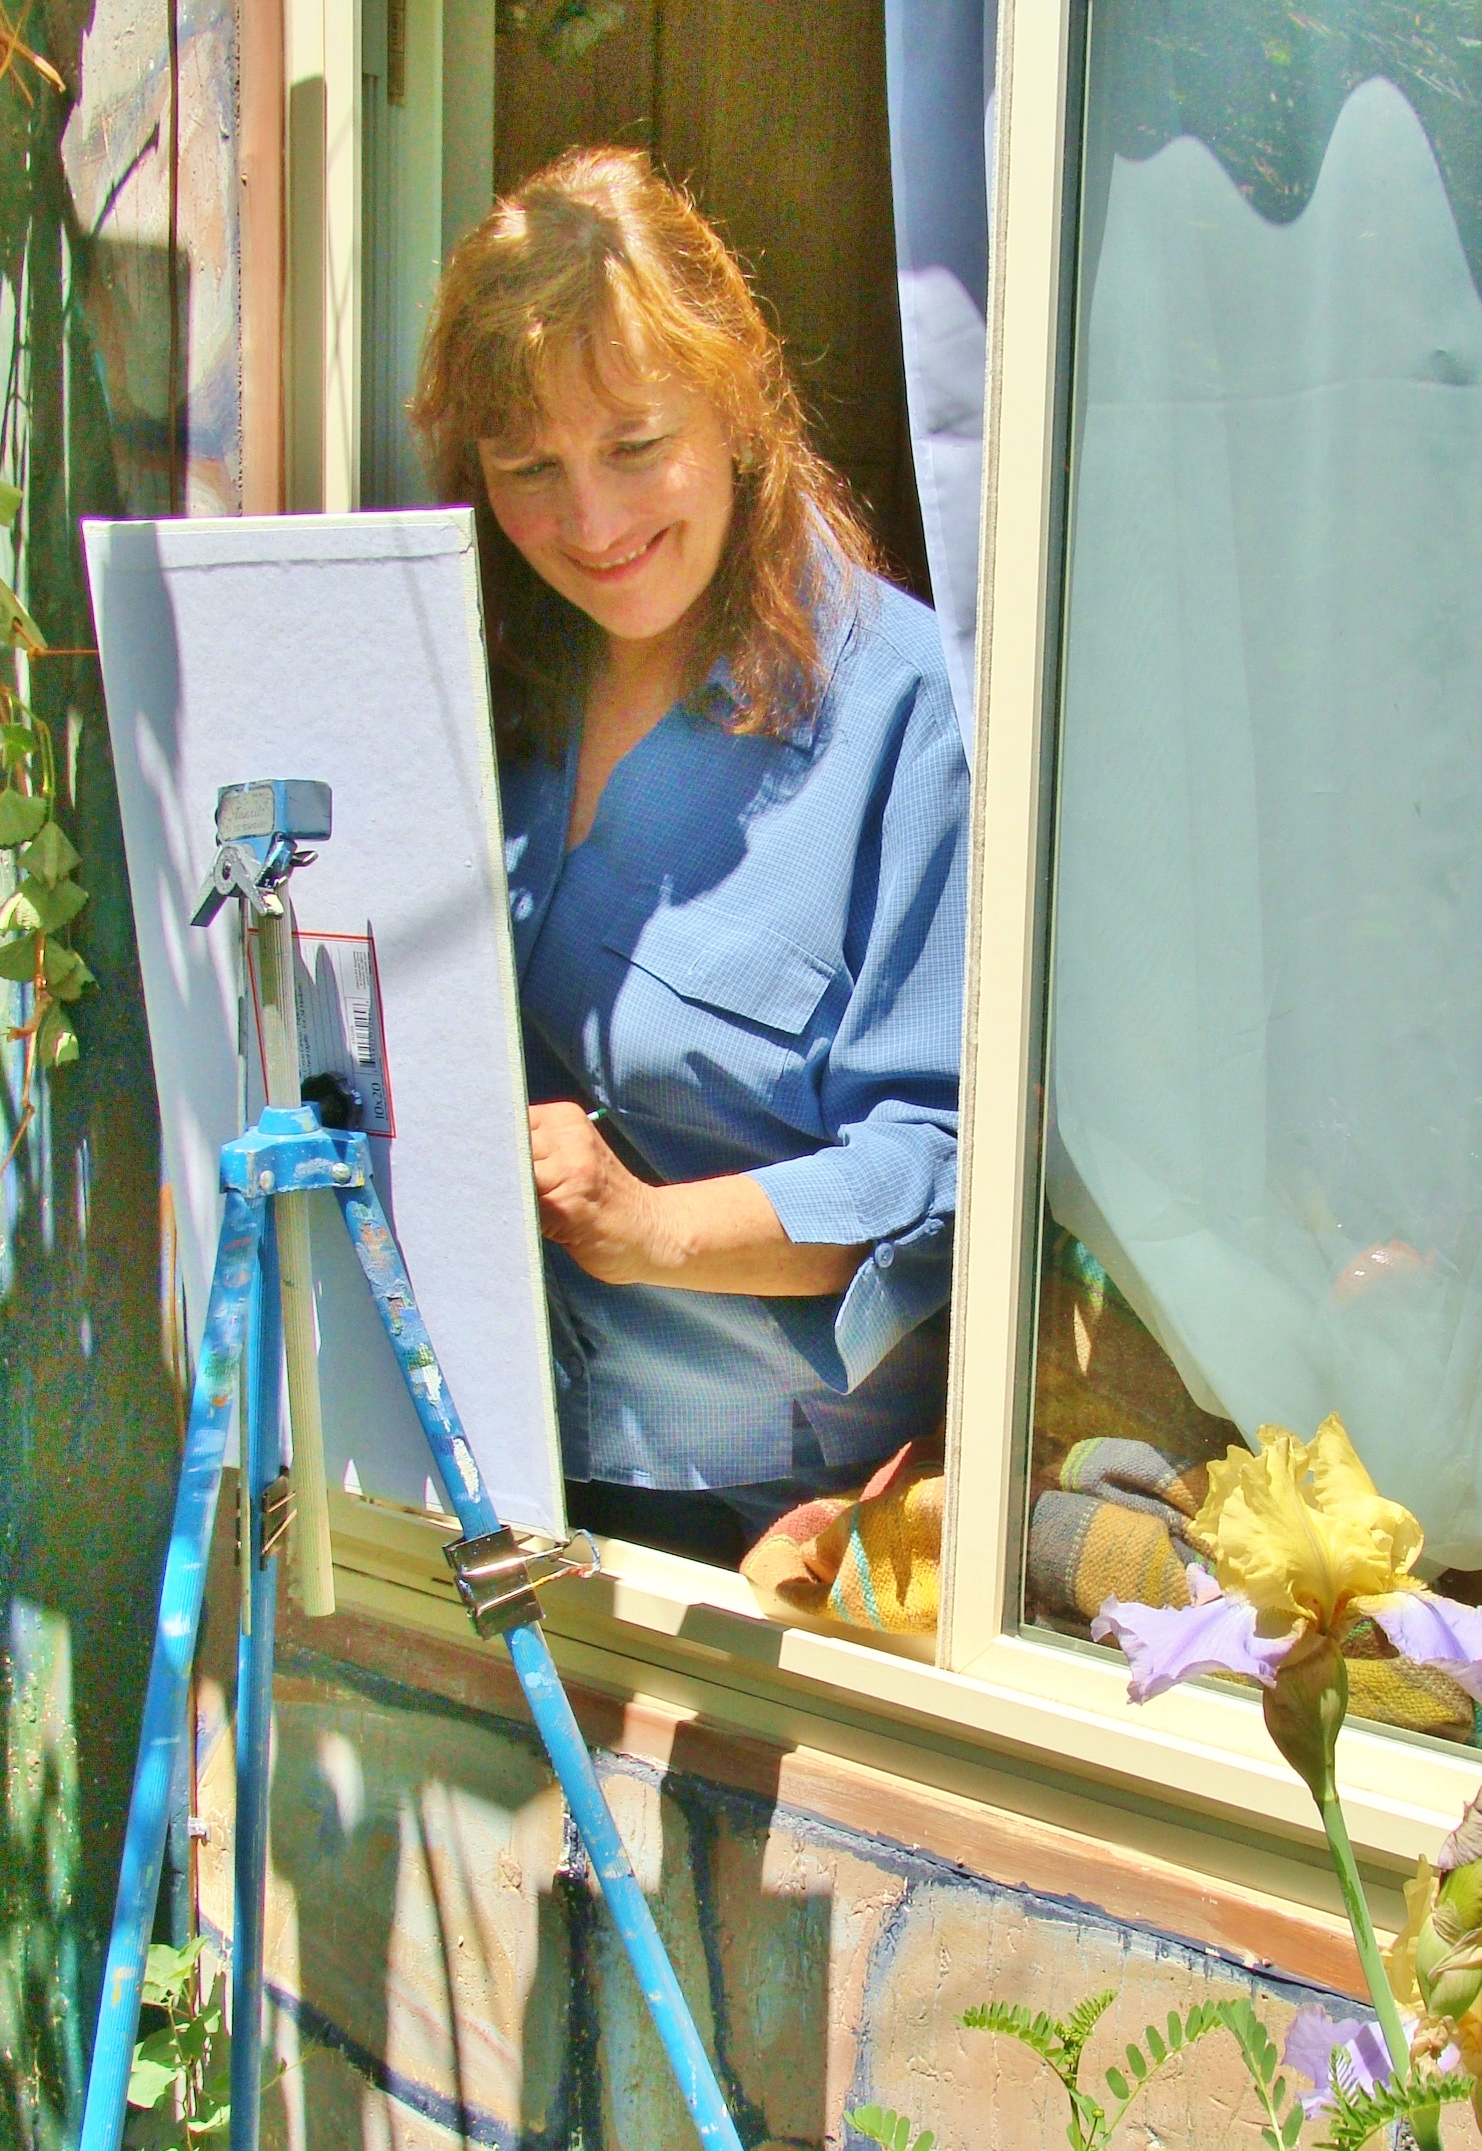 Lillian Kennedy painting plein air and in the studio simulaneously